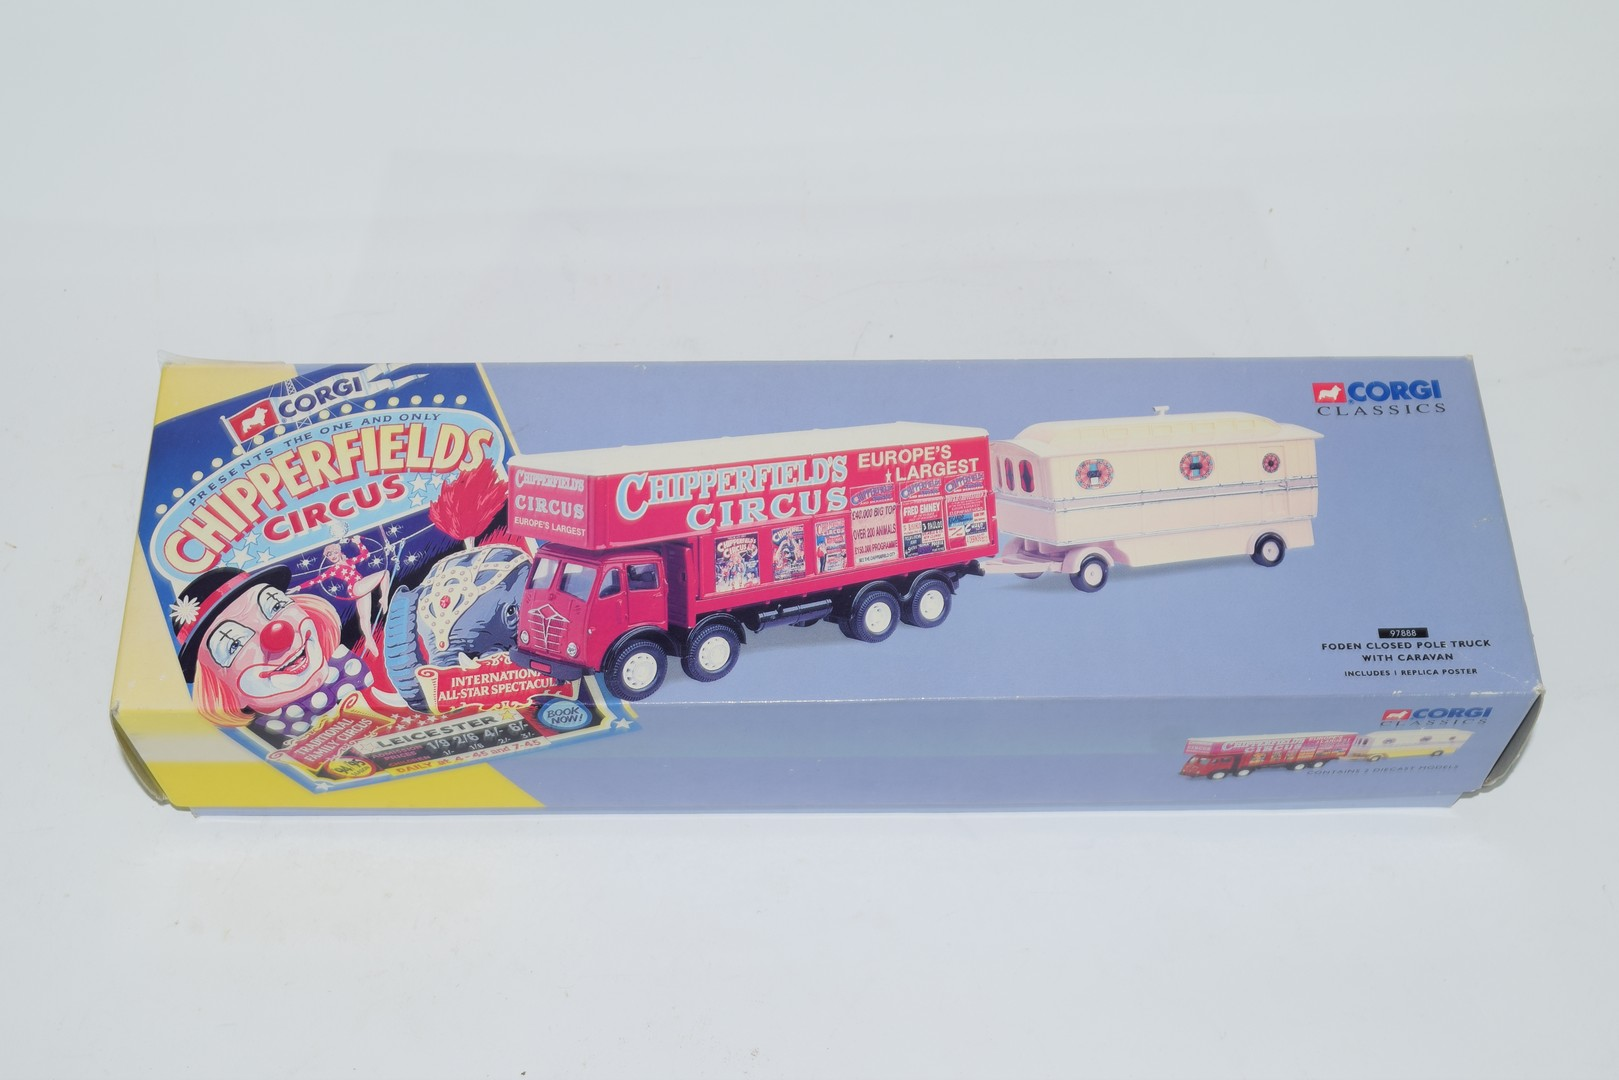 Corgi boxed model of a Chipperfields Circus lorry and caravan No 97888